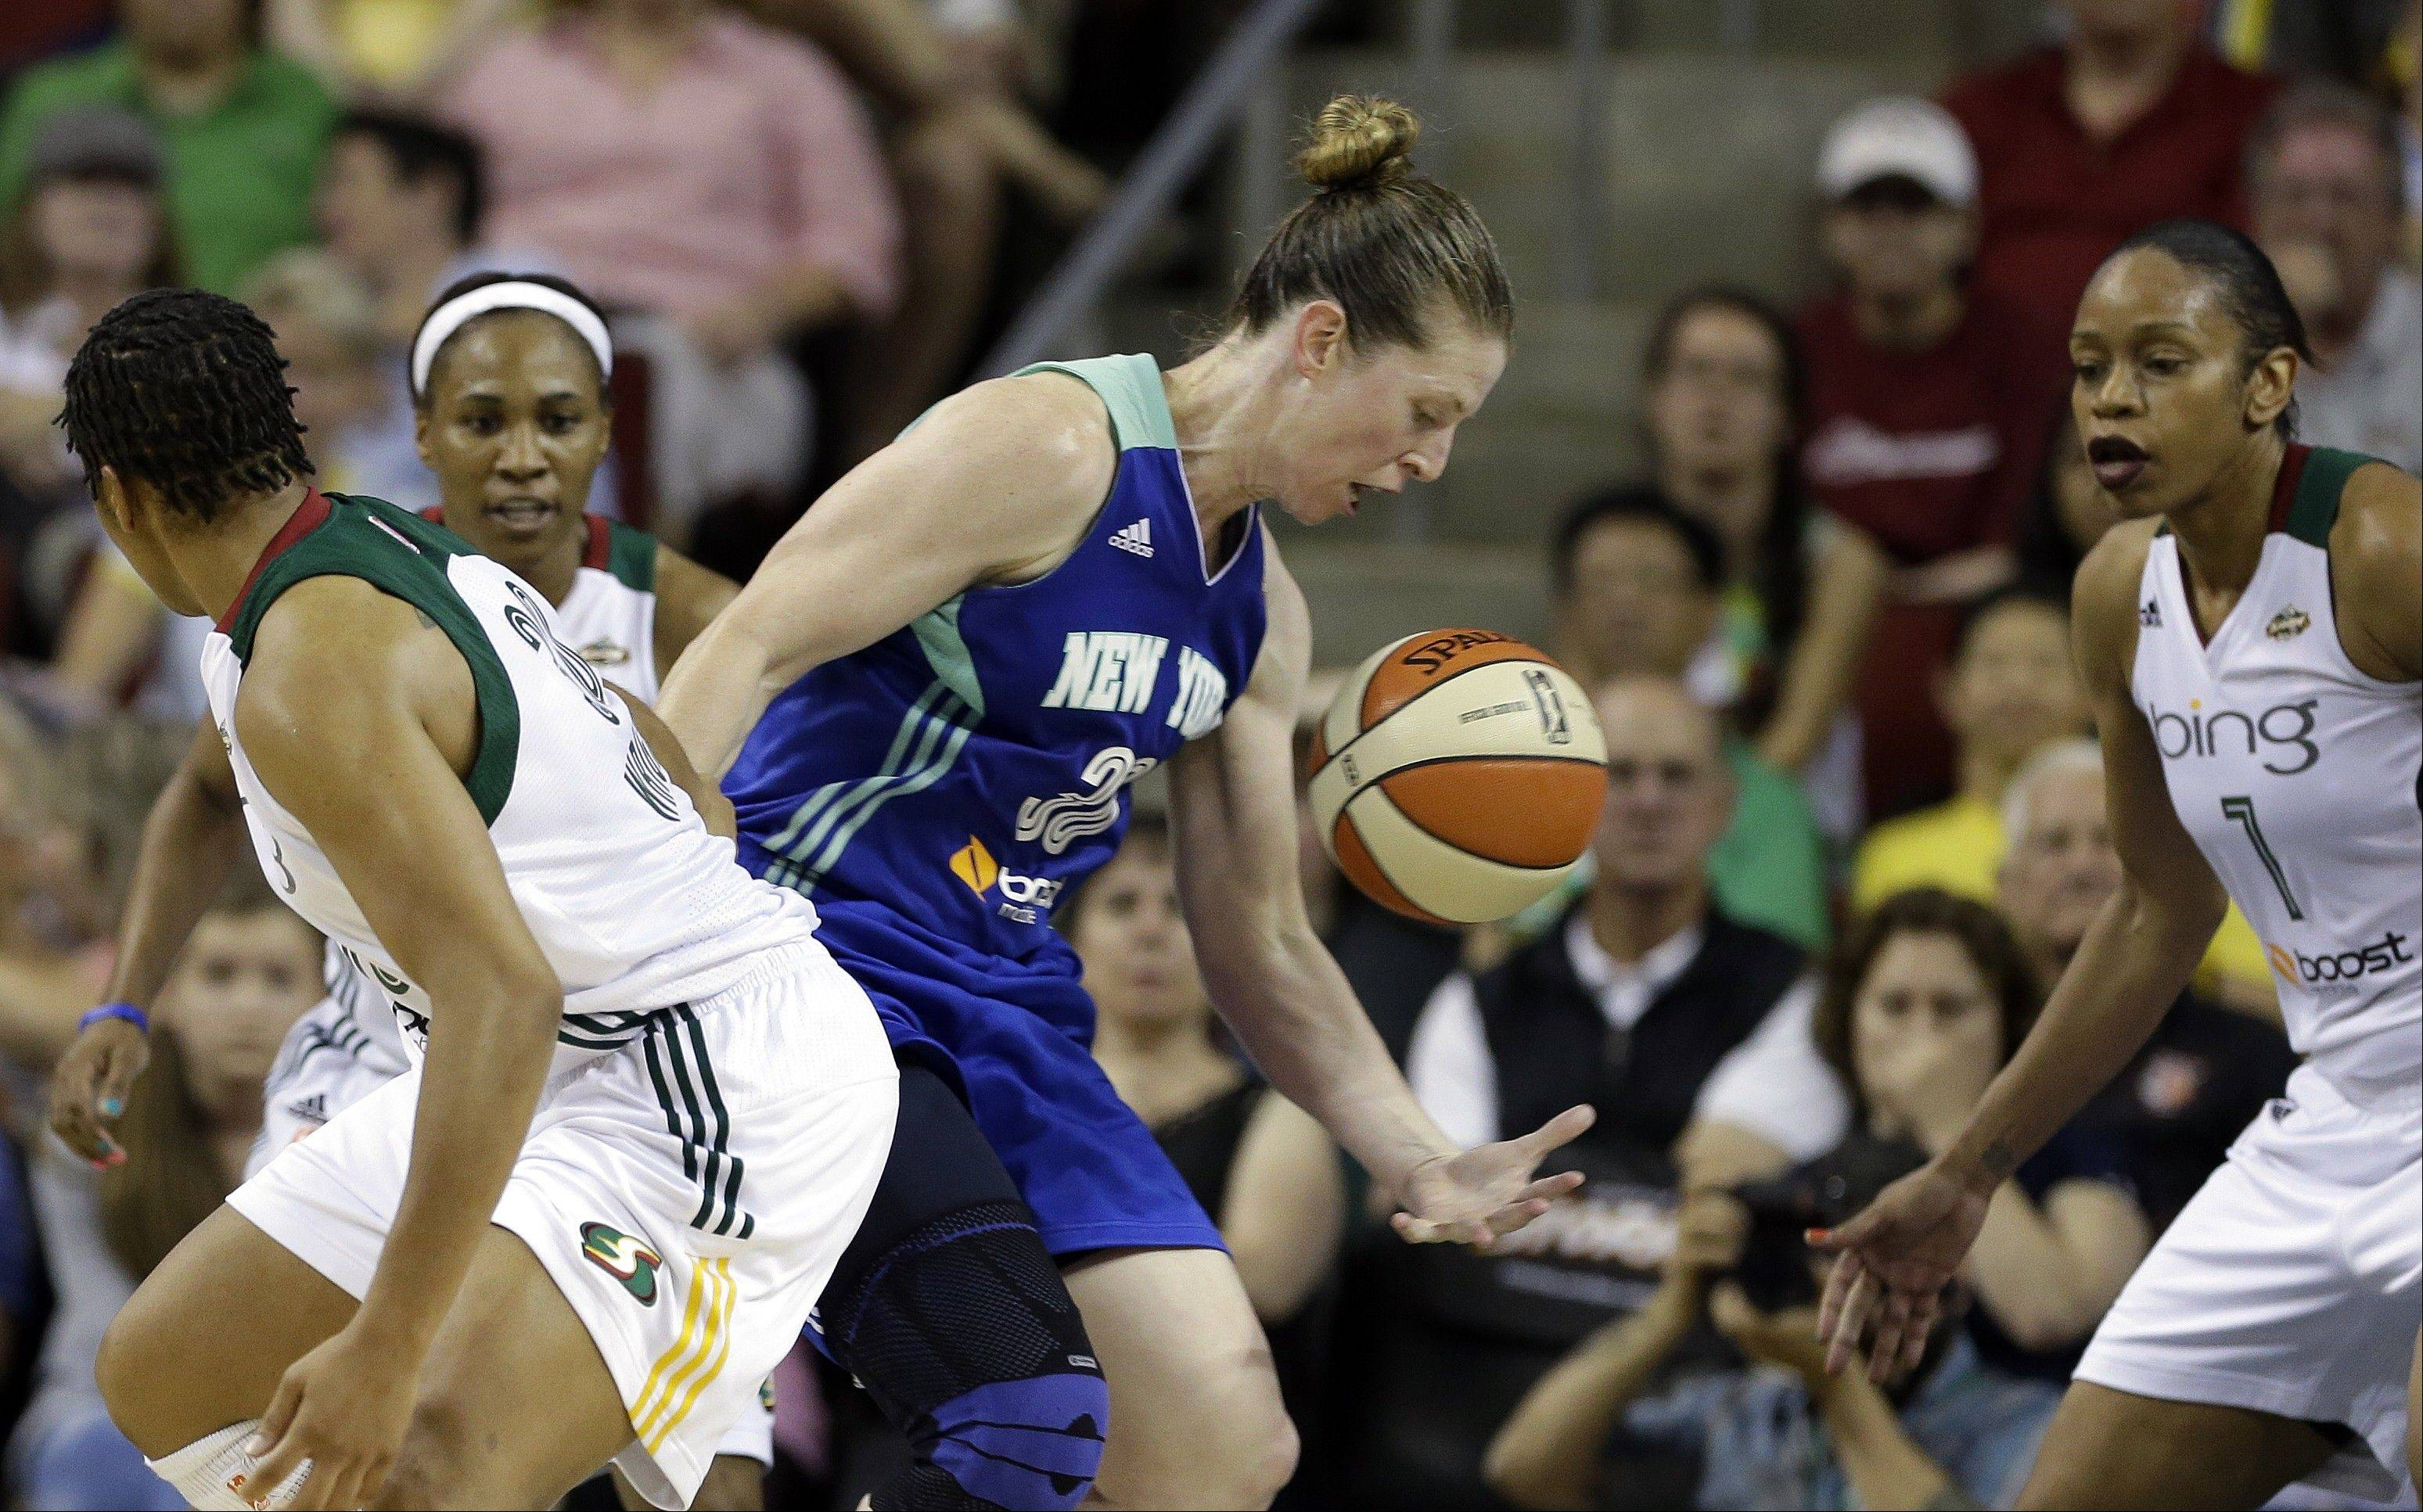 New York Liberty's Katie Smith, center, tries to hold on to the ball between Seattle Storm's Tina Thompson, right, Tanisha Wright, left, and Temeka Johnson in the second half of a WNBA basketball game Friday, June 28, 2013, in Seattle. New York won 67-62.